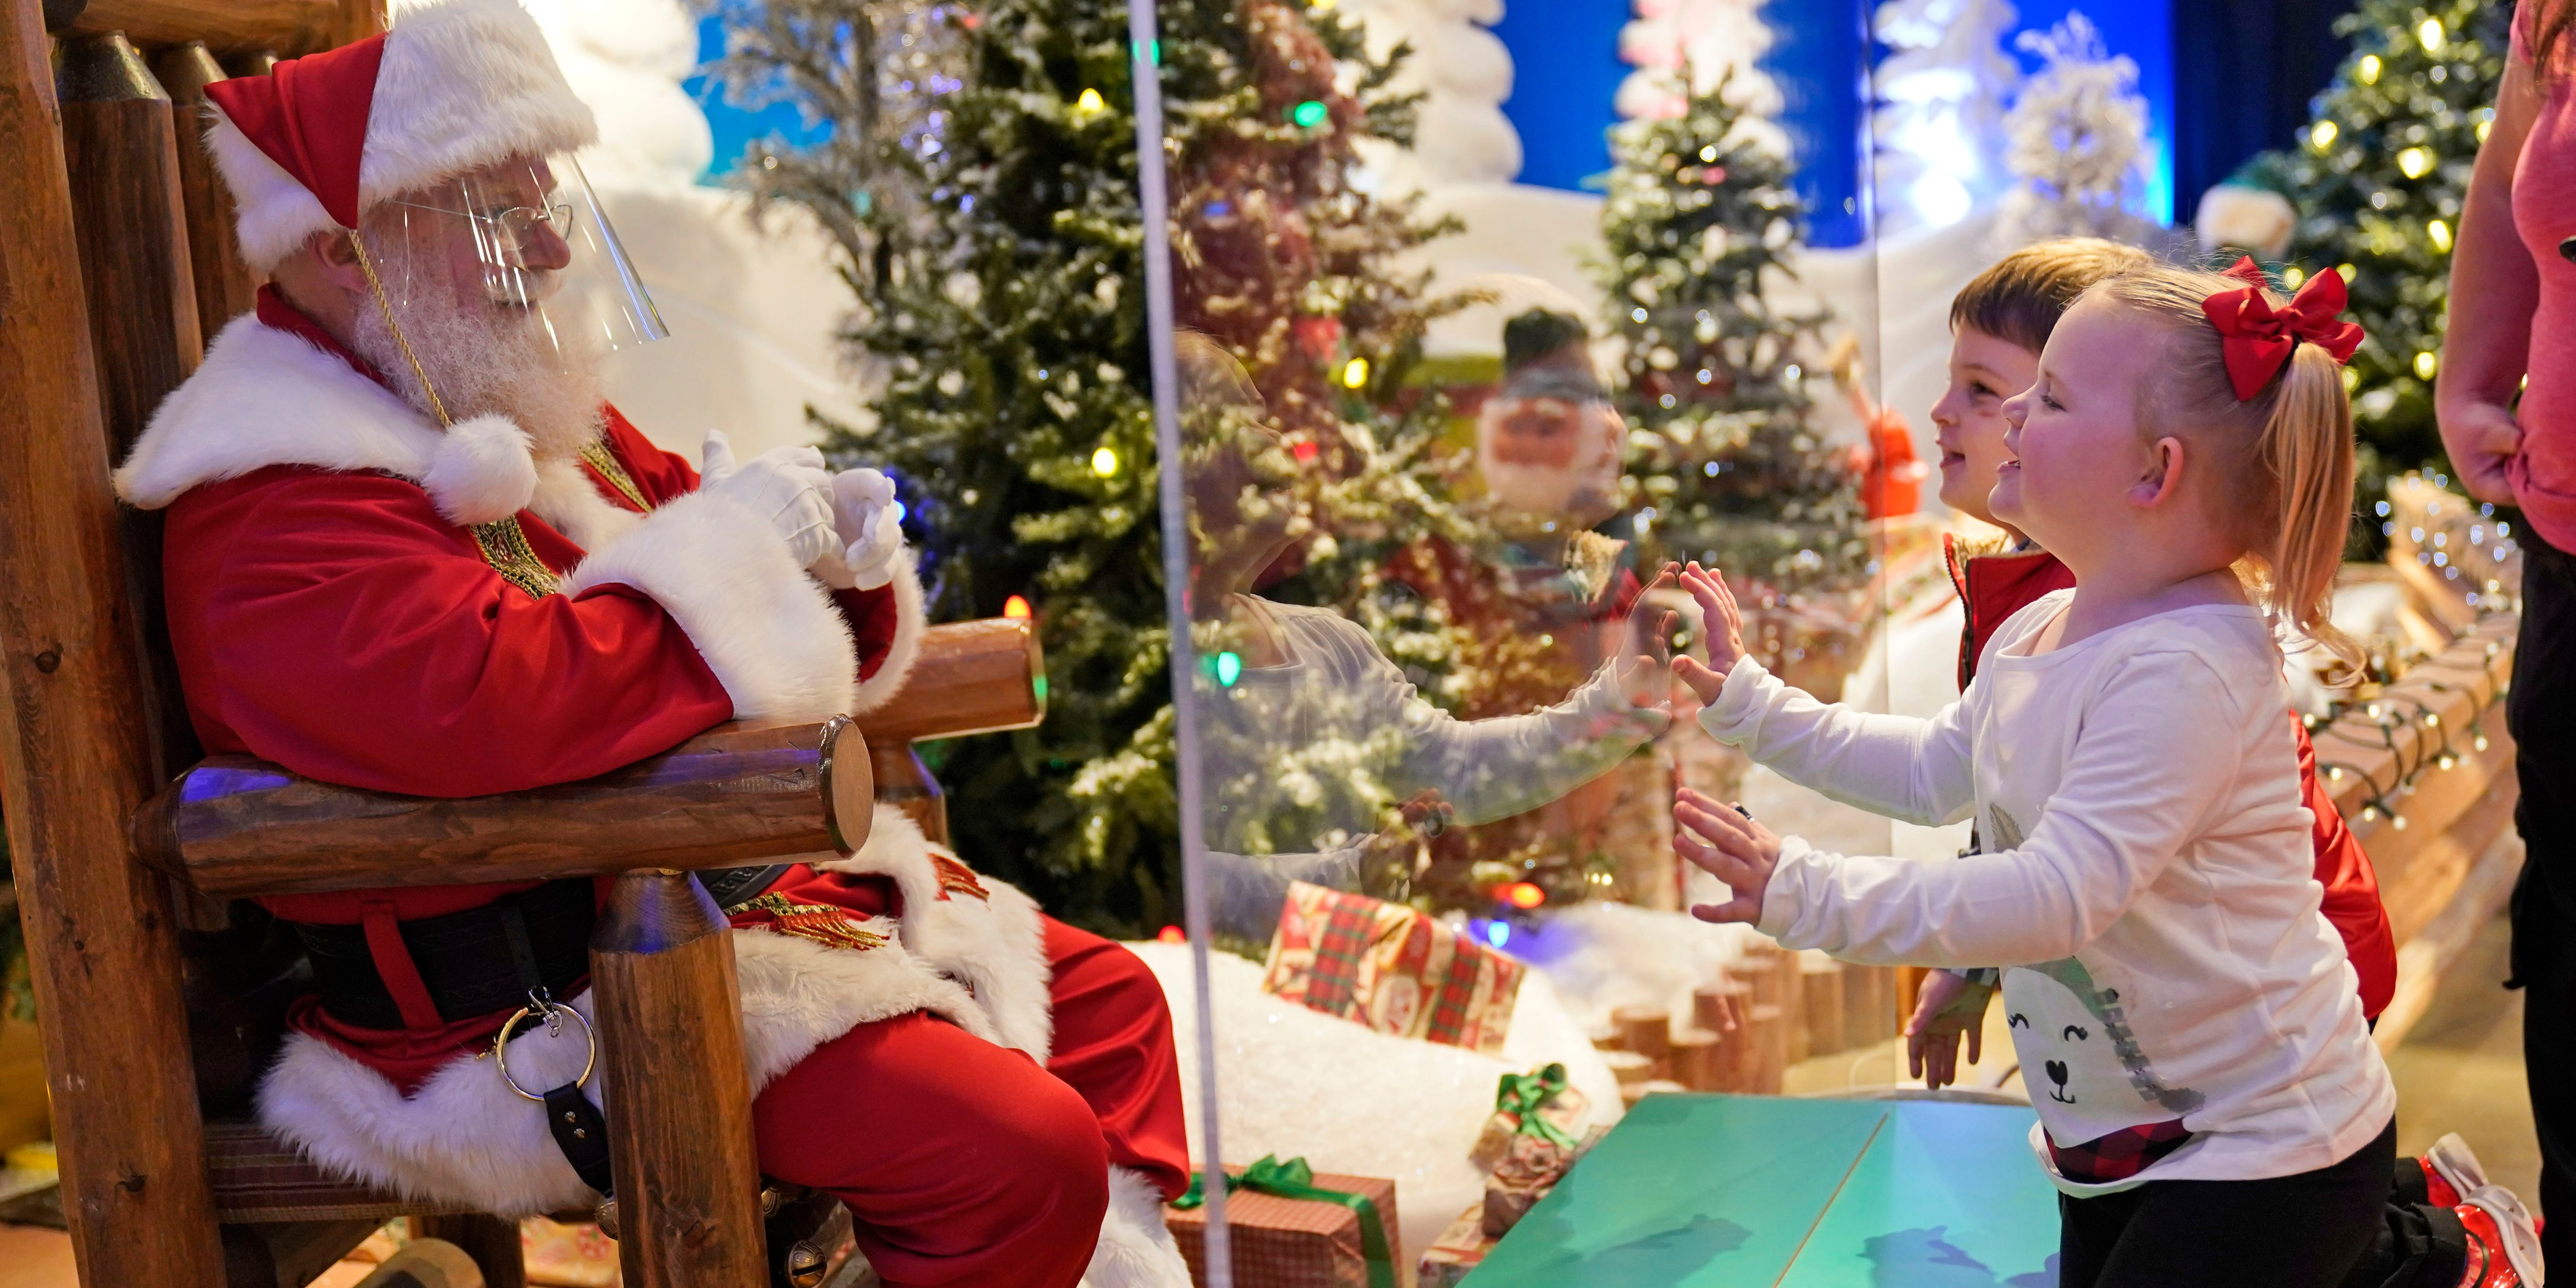 Here comes Santa Claus - with face masks and plexiglass